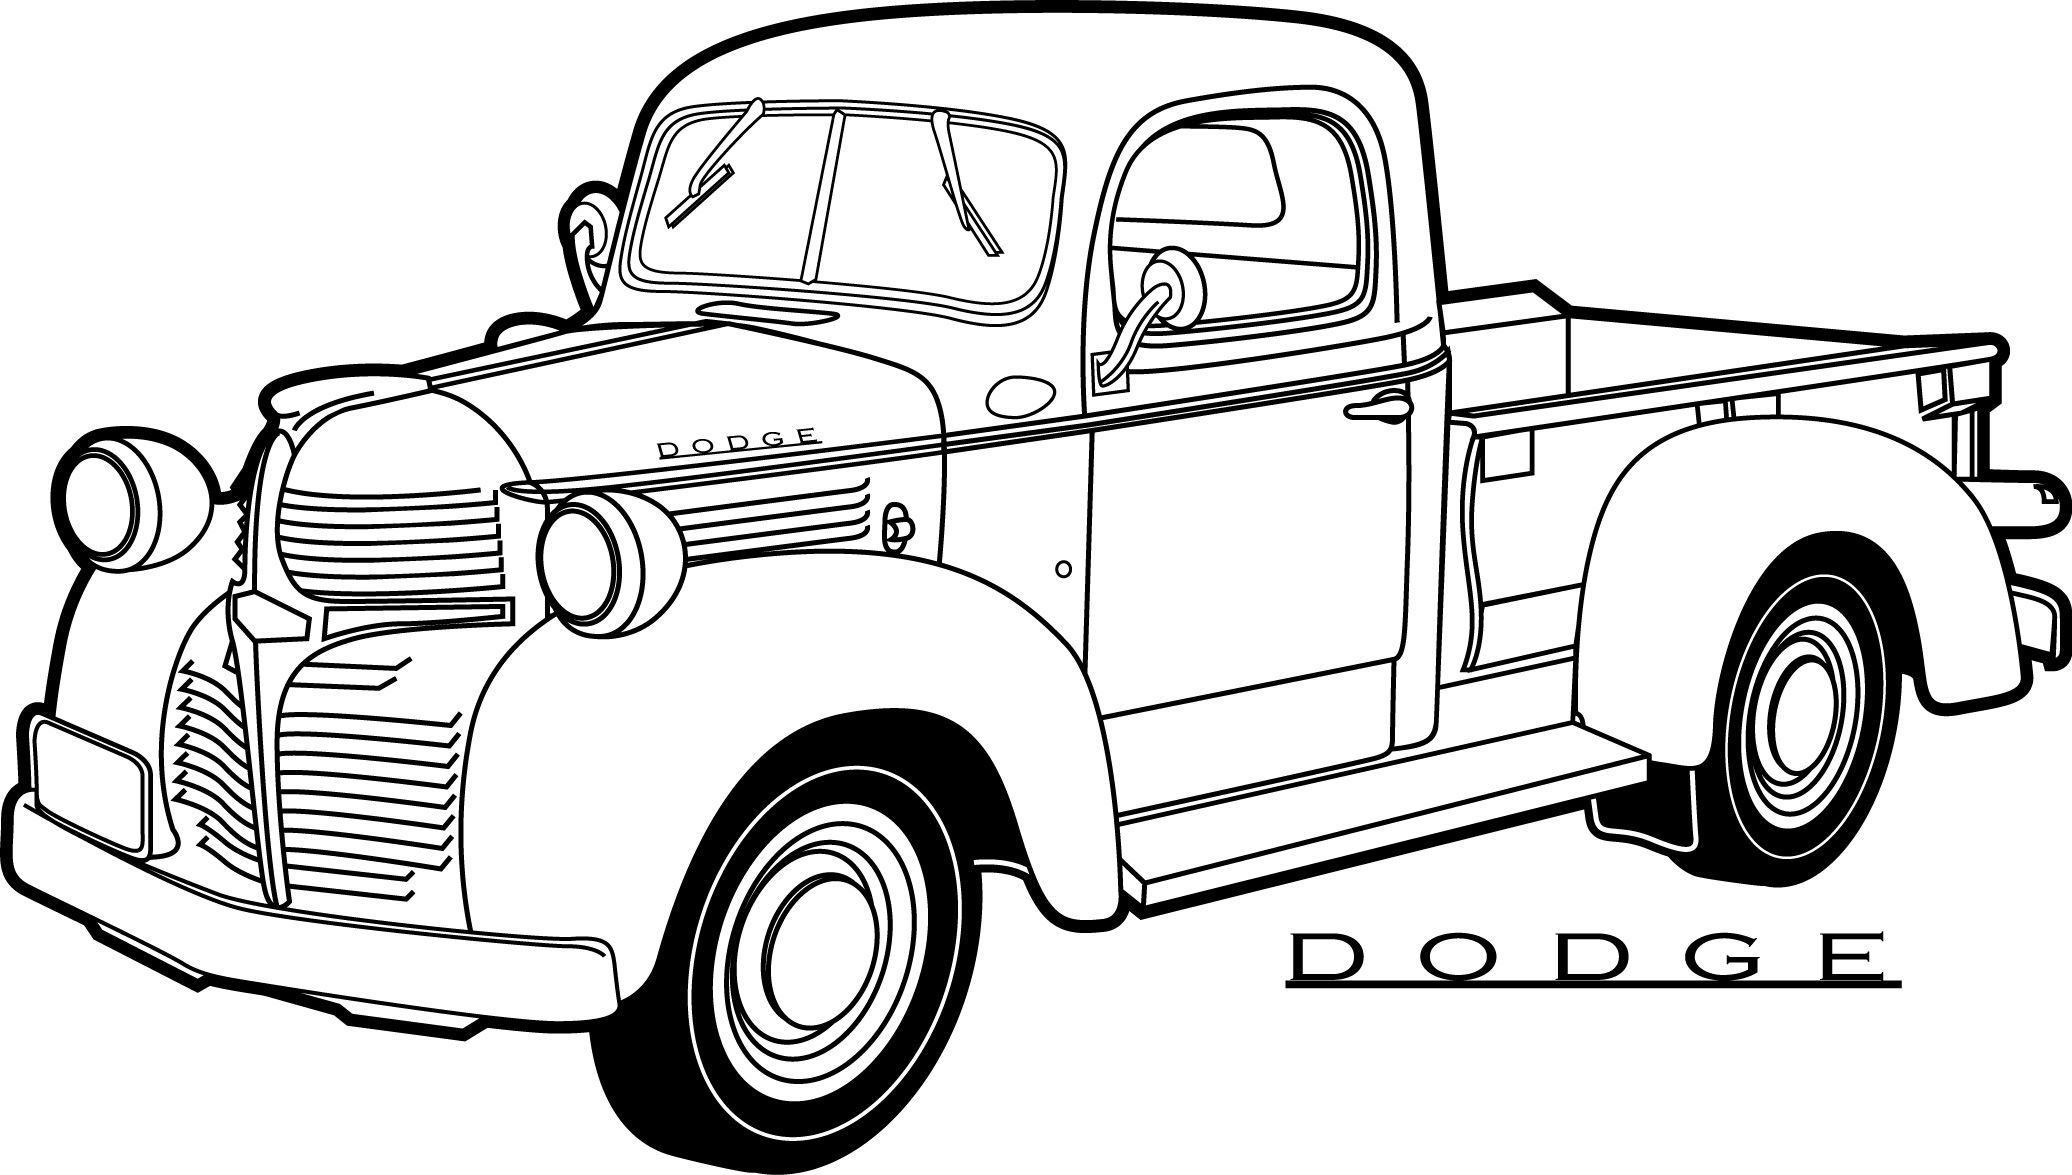 30 Coloring Pages Of Cars And Trucks Truck Coloring Pages Cars Coloring Pages Old Trucks